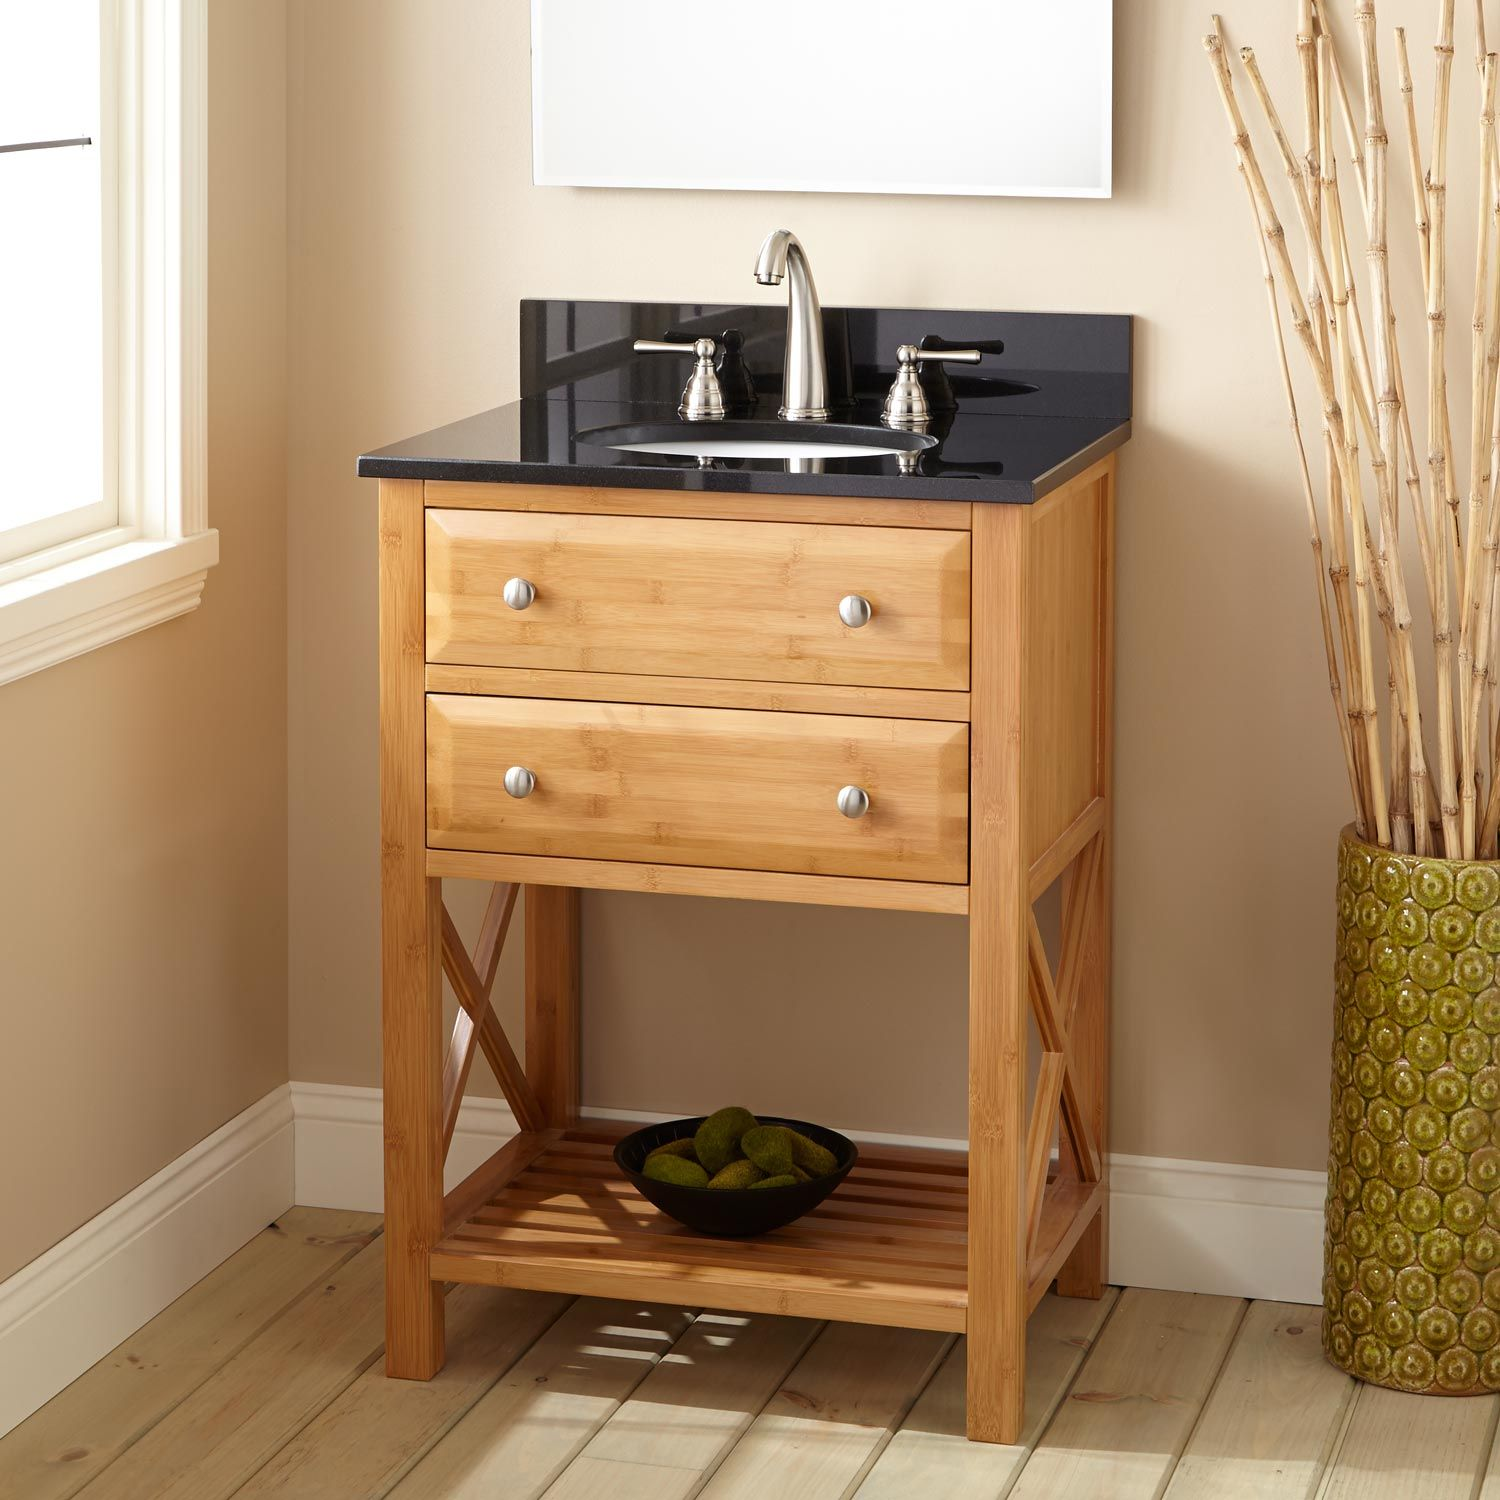 "24 Inch Bathroom Vanity With Legs 24"" narrow depth clinton bamboo vanity for undermount sink"